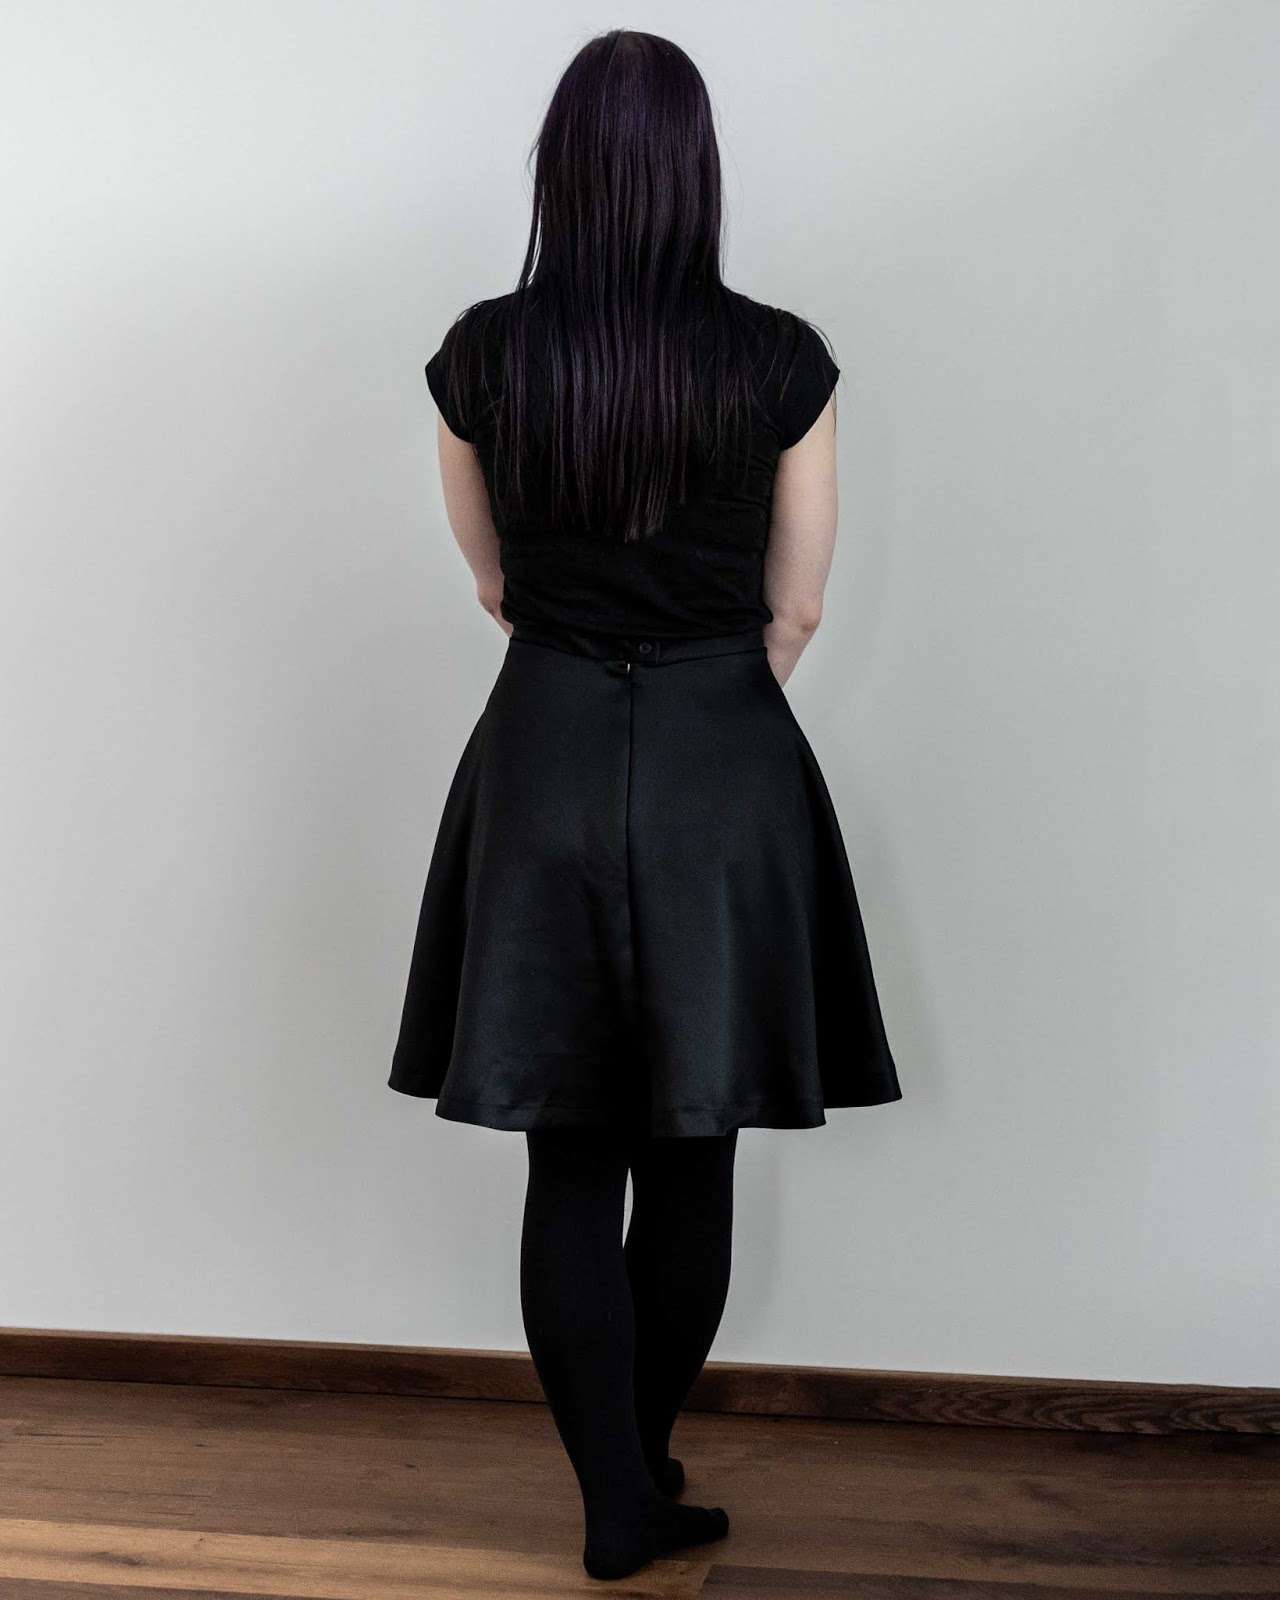 half circle skirt sewing Minn's Things calculator self drafted handmade diy free back view zipper invisible button